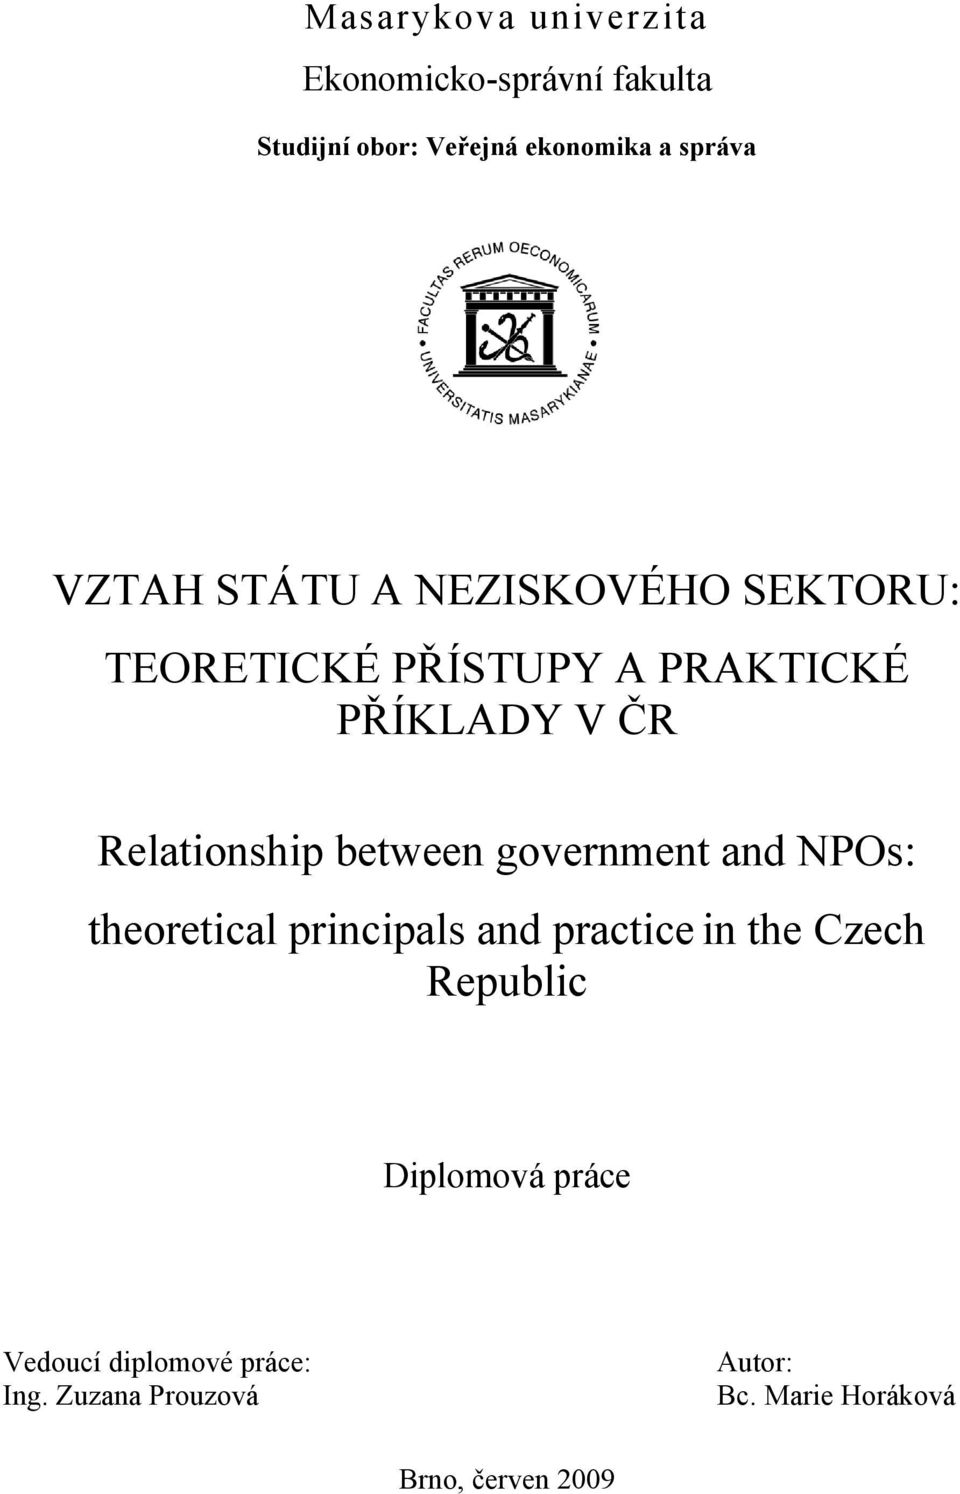 between government and NPOs: theoretical principals and practice in the Czech Republic